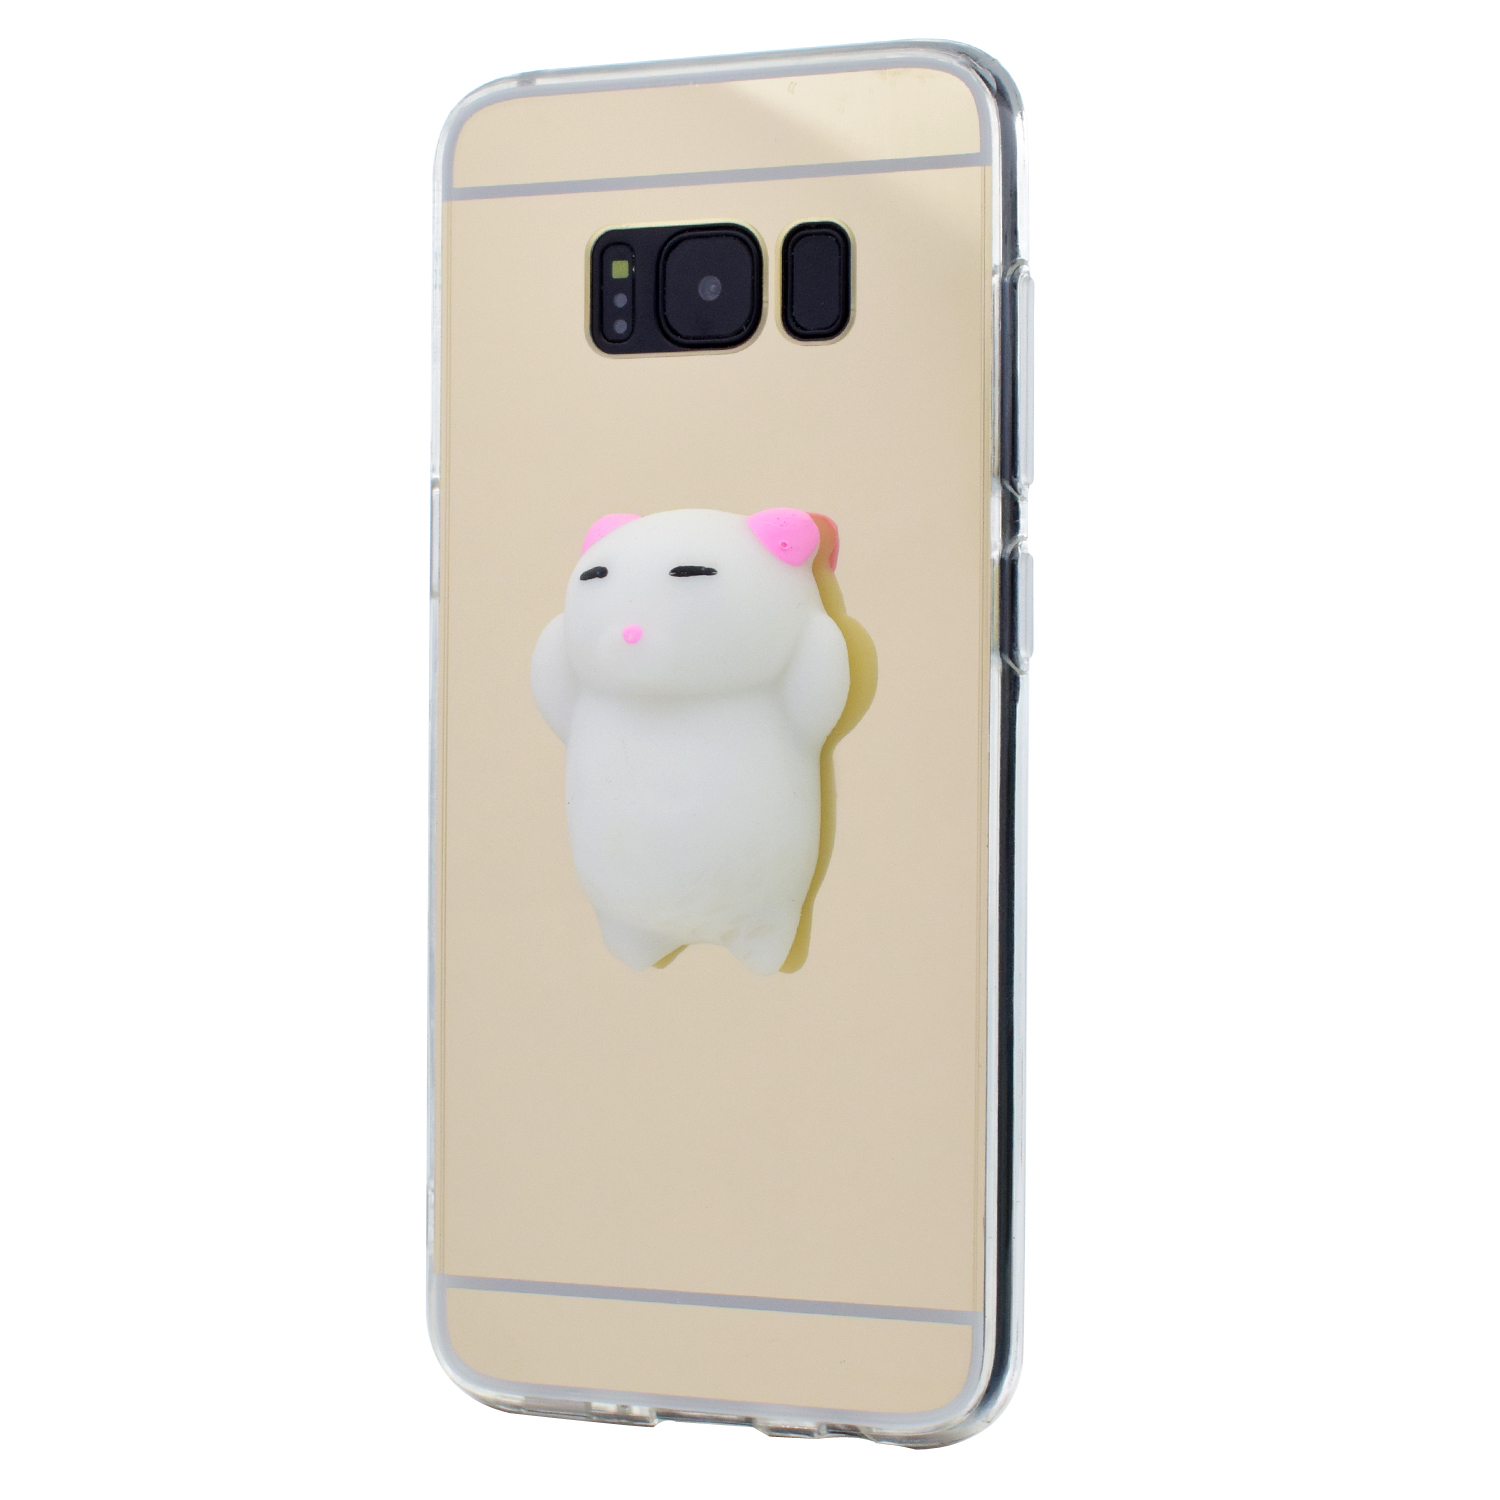 Squishy Cat For Phone Case : For Samsung Galaxy Phone Cute Squishy Cat Case Mirror Soft TPU Rubber Cover Skin eBay